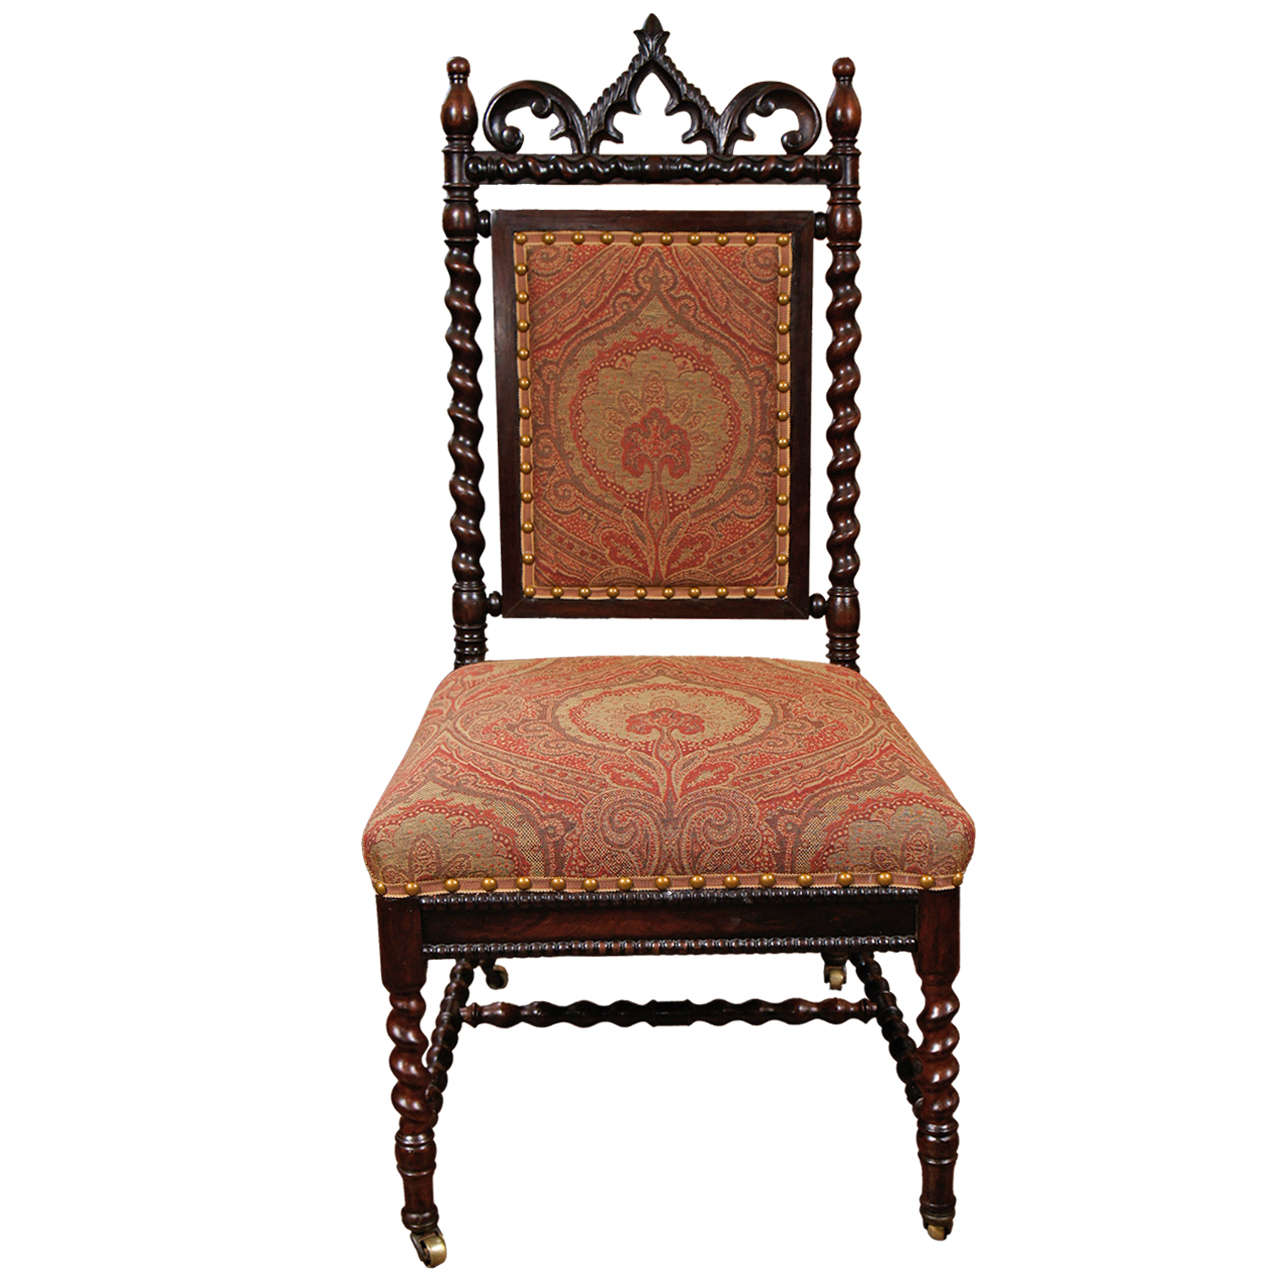 Gothic Revival Walnut Side Chair on Casters